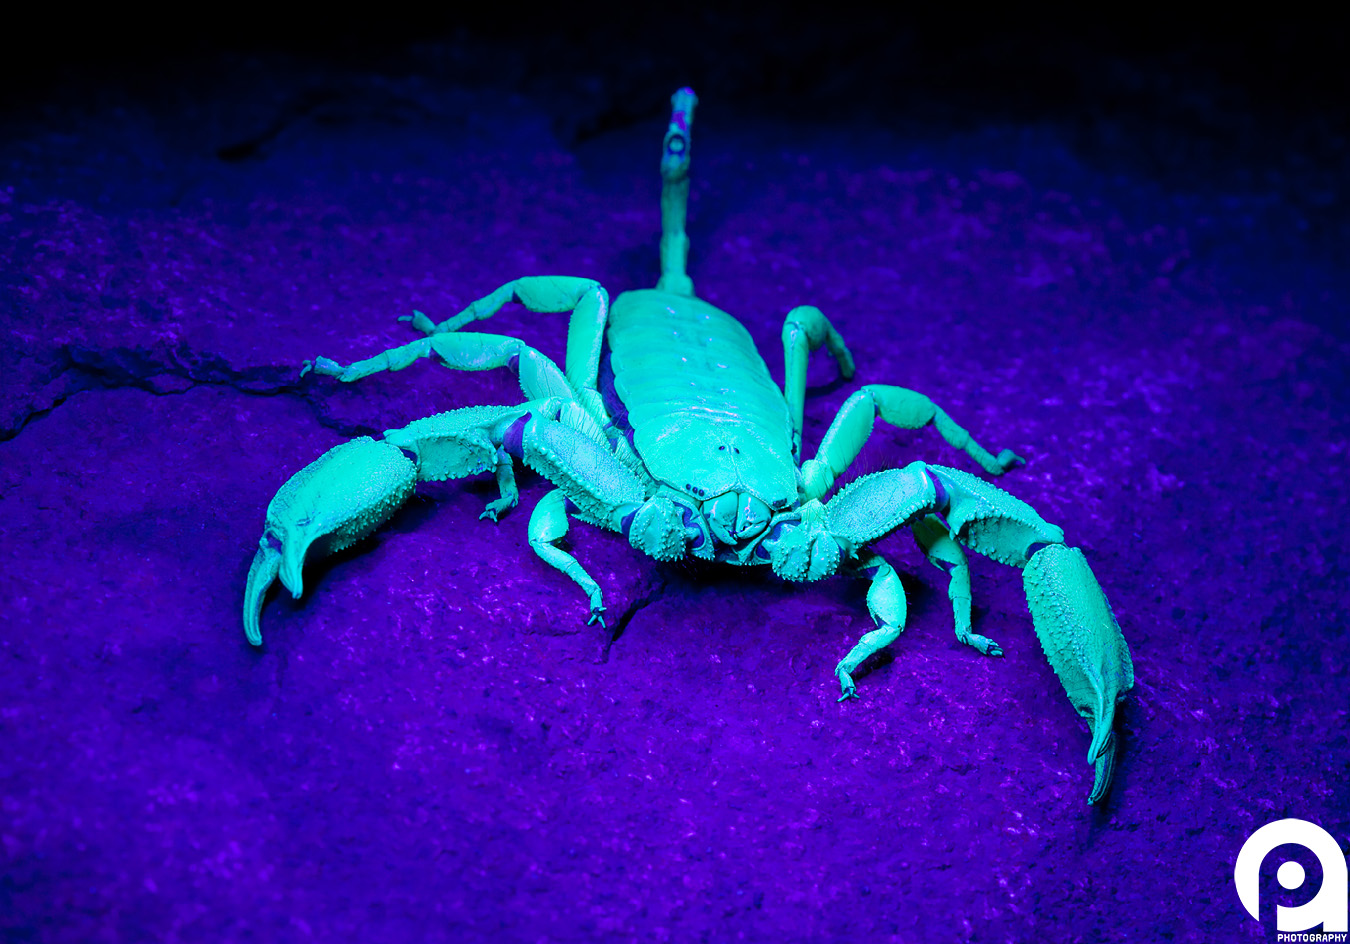 Photography under uv light